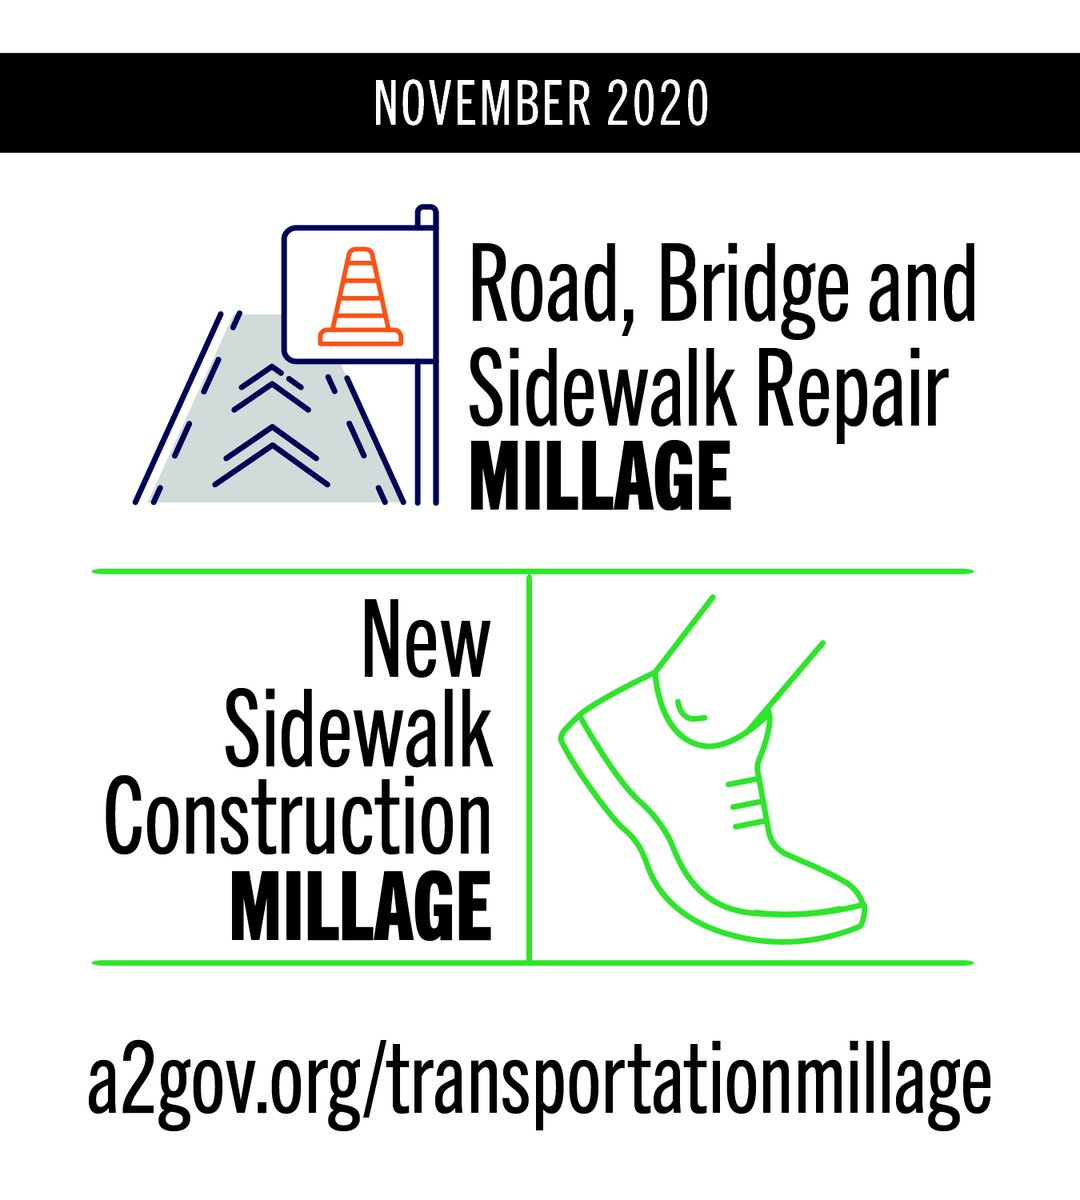 Since 2012, Ann Arbor's Street, Bridge and Sidewalk Repair millage generated $94 million, the primary funding source for improving and maintaining 300 miles of Ann Arbor streets. #A2millages